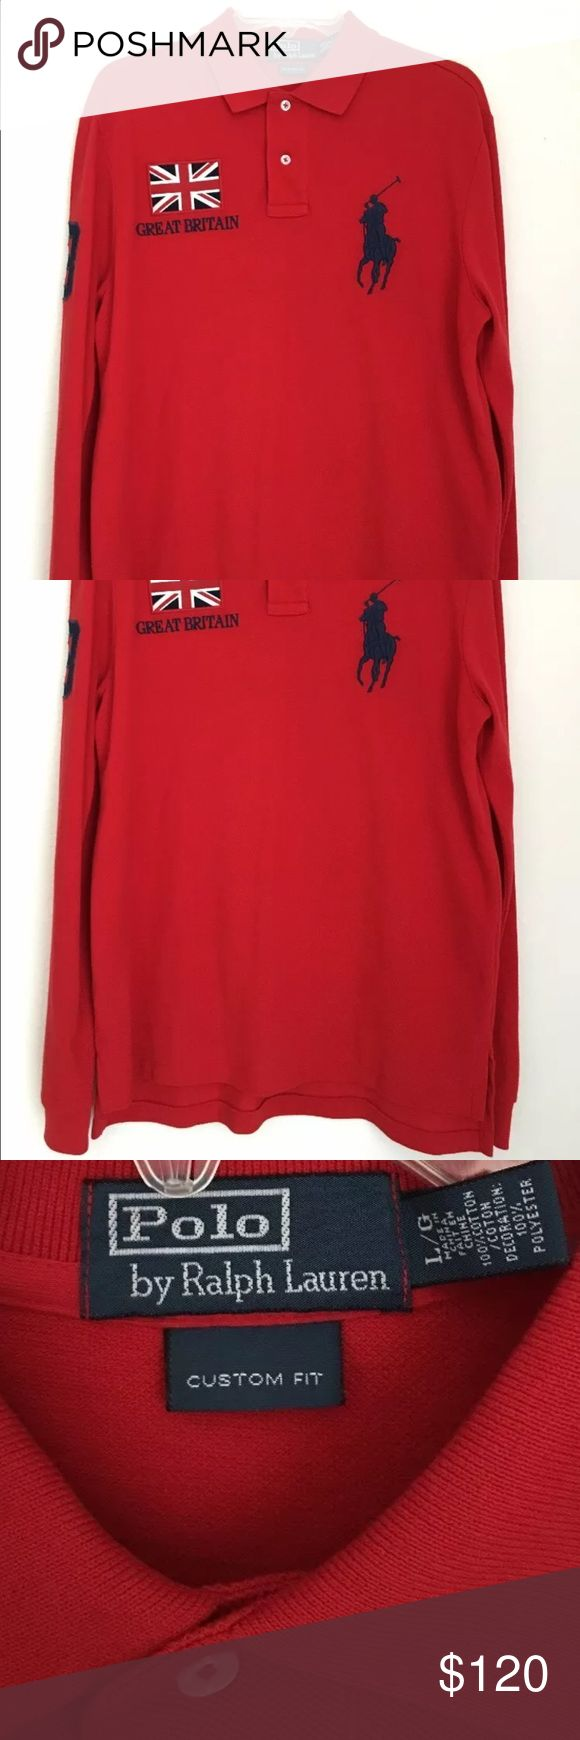 Men's Polo Ralph Lauren Great Britain Flag Custom fit, Big Pony Polo by Ralph Lauren Shirts Polos